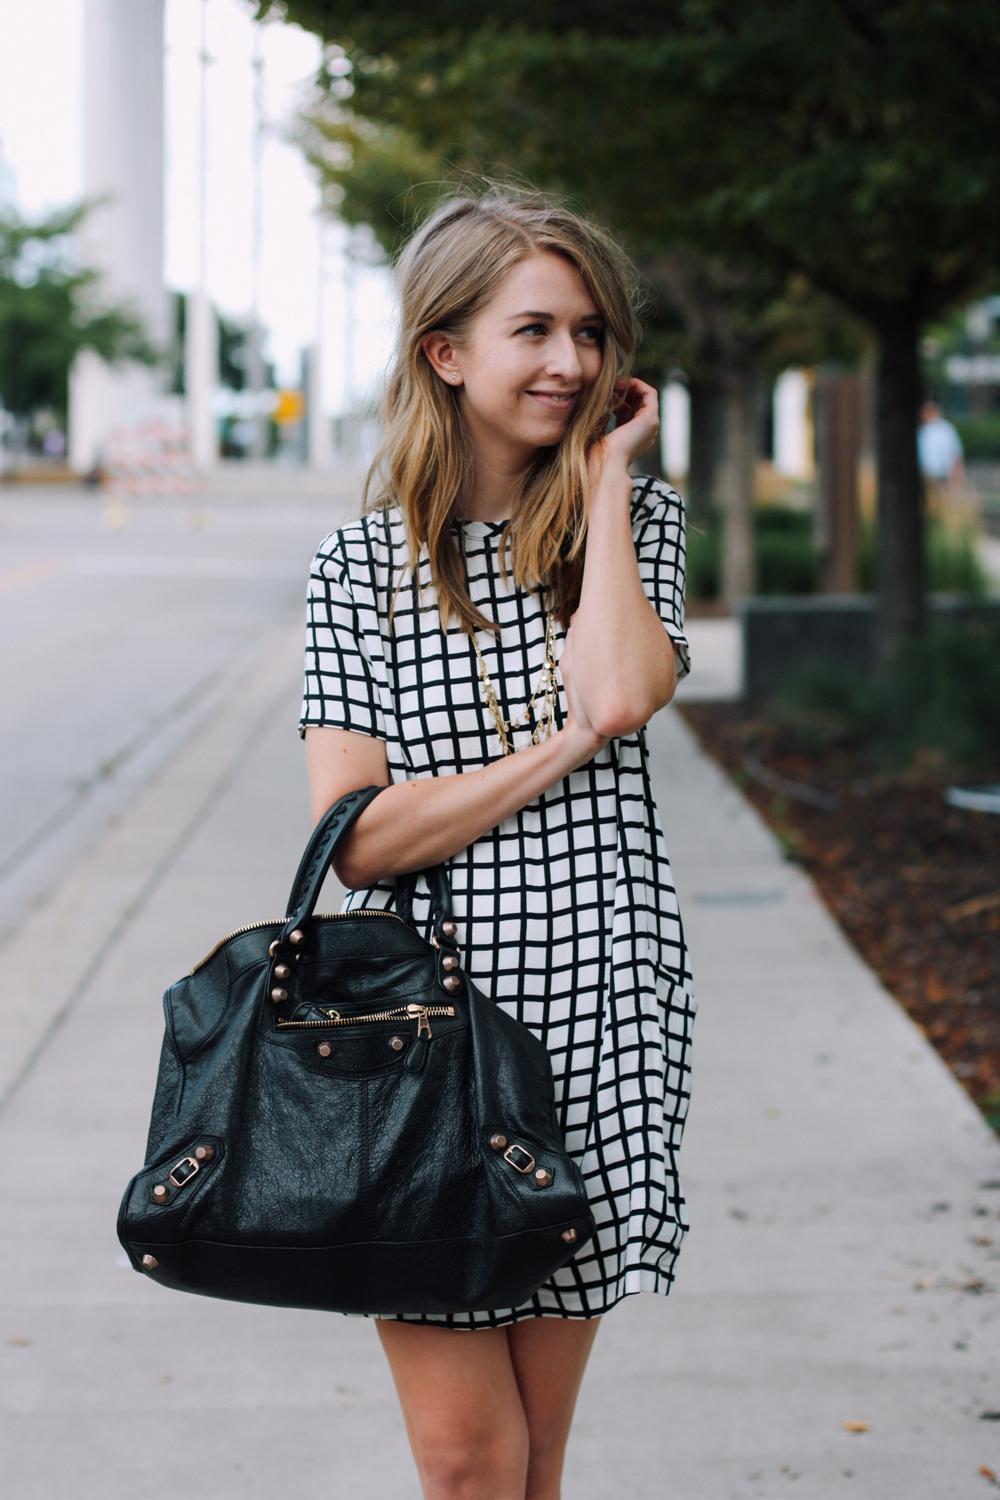 LOFT necklace, Abercrombie dress, Balenciaga tote via truelane.png